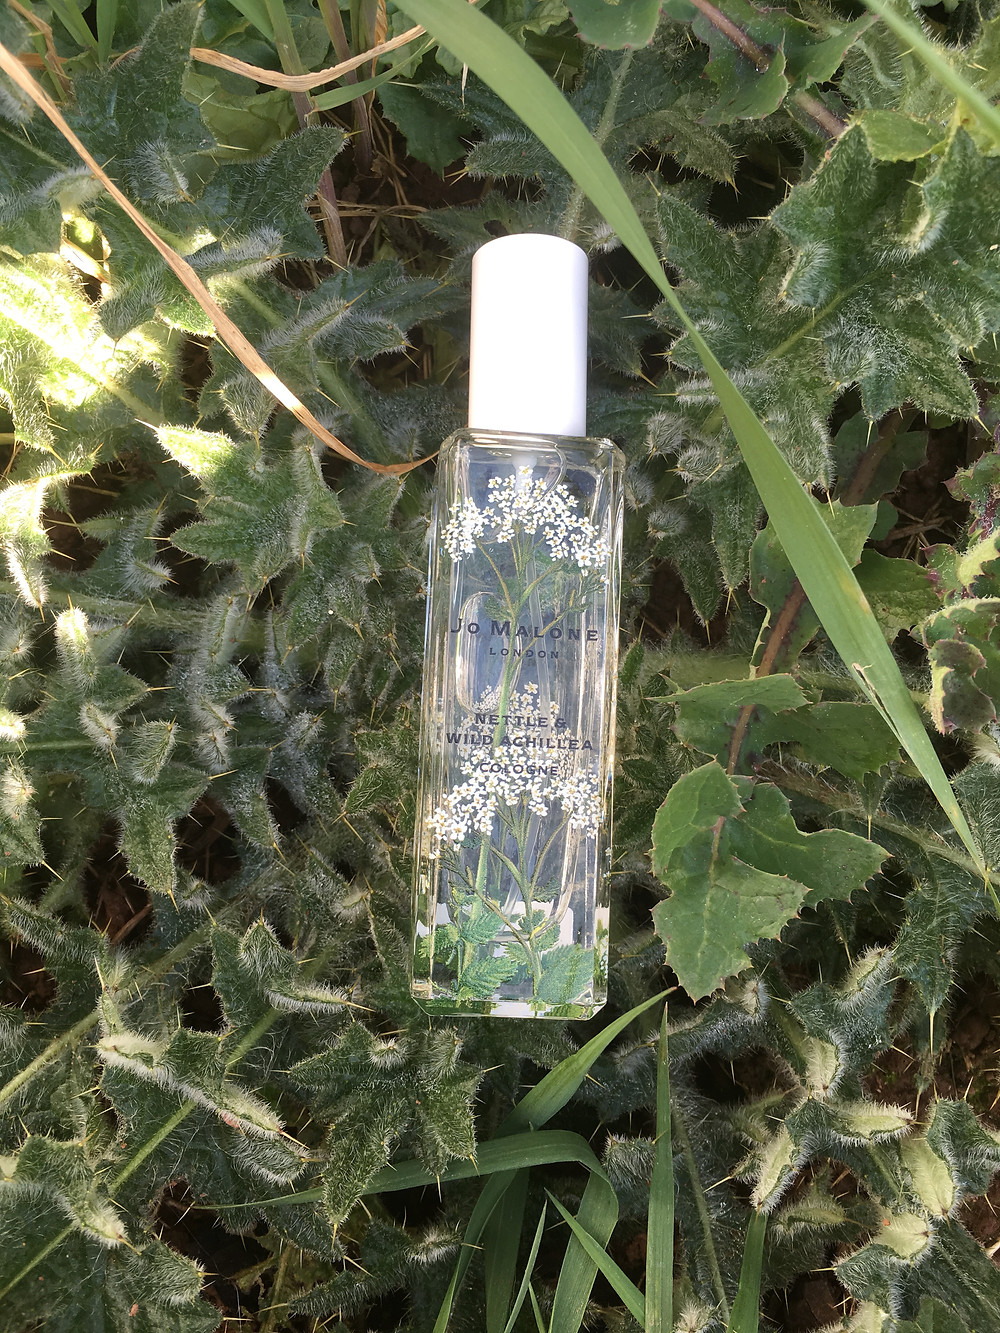 Nettle & Wild Achillea from Wild Flowers and Weeds